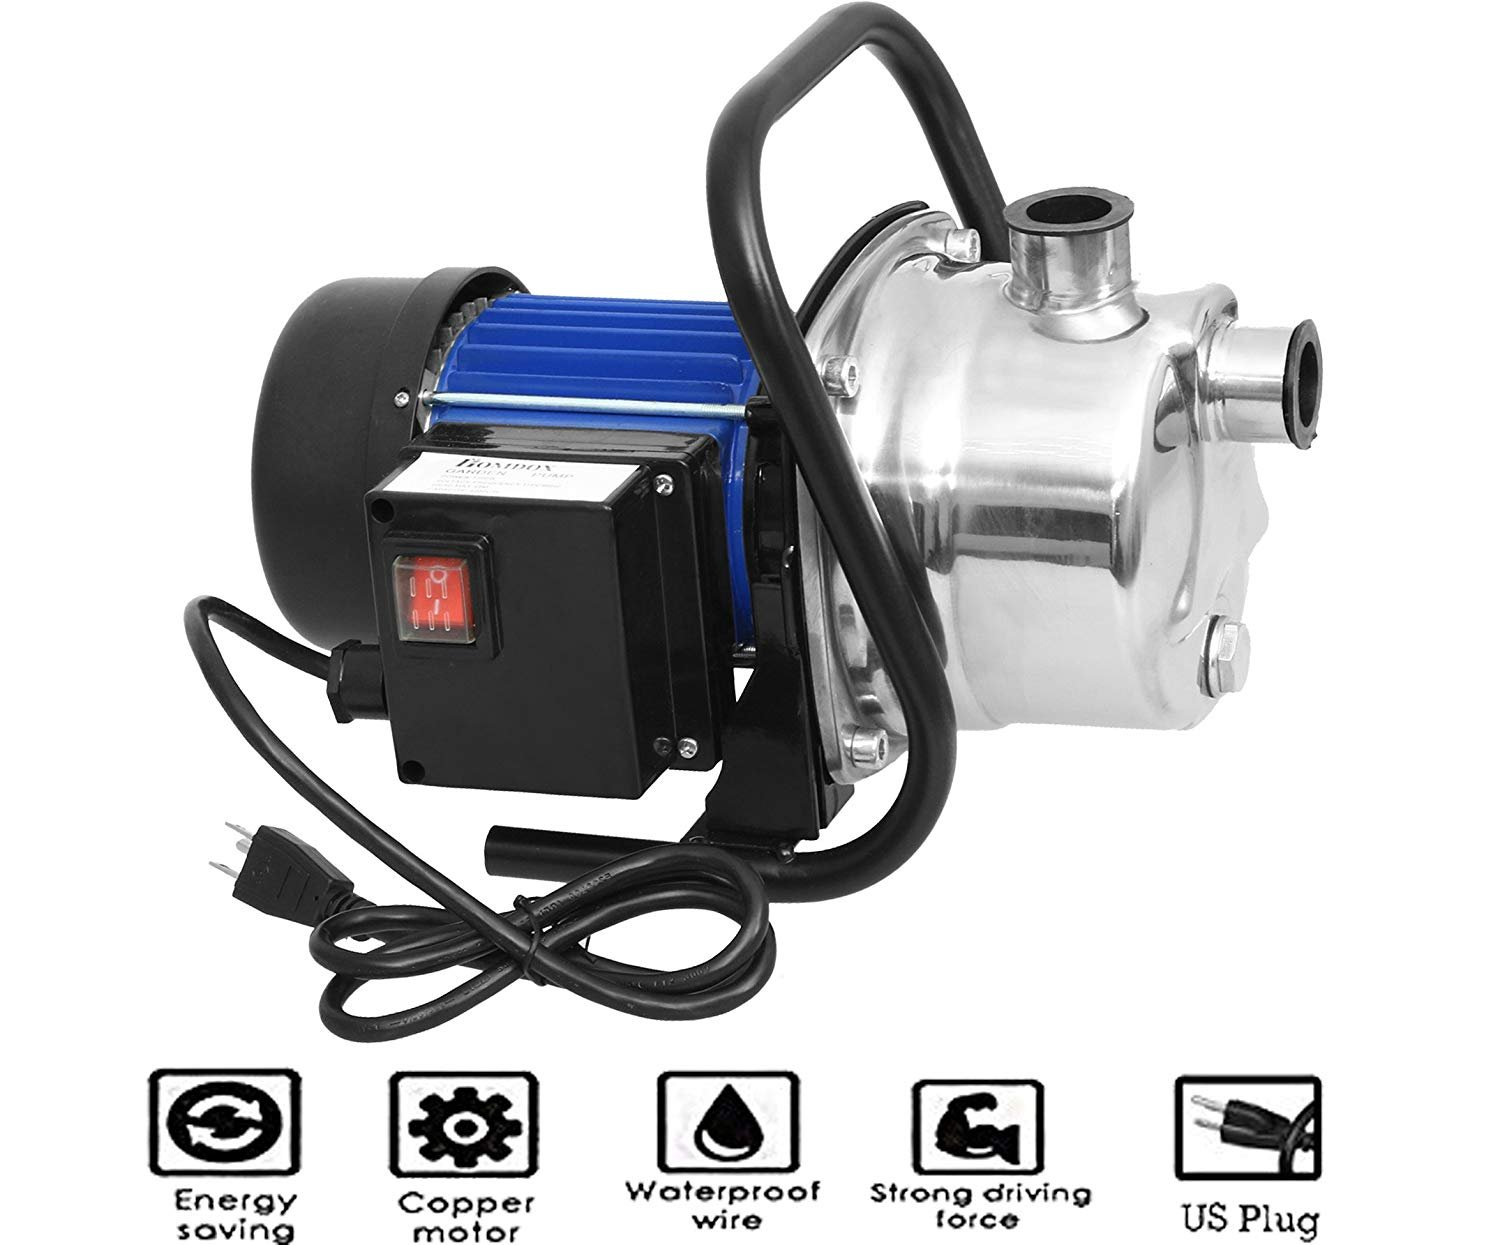 Meditool 1.6HP Shallow Well Pump Stainless Booster Pump Lawn Water Pump Electric Water Transfer Home Garden Irrigation 115V (1.6HP) by Meditool